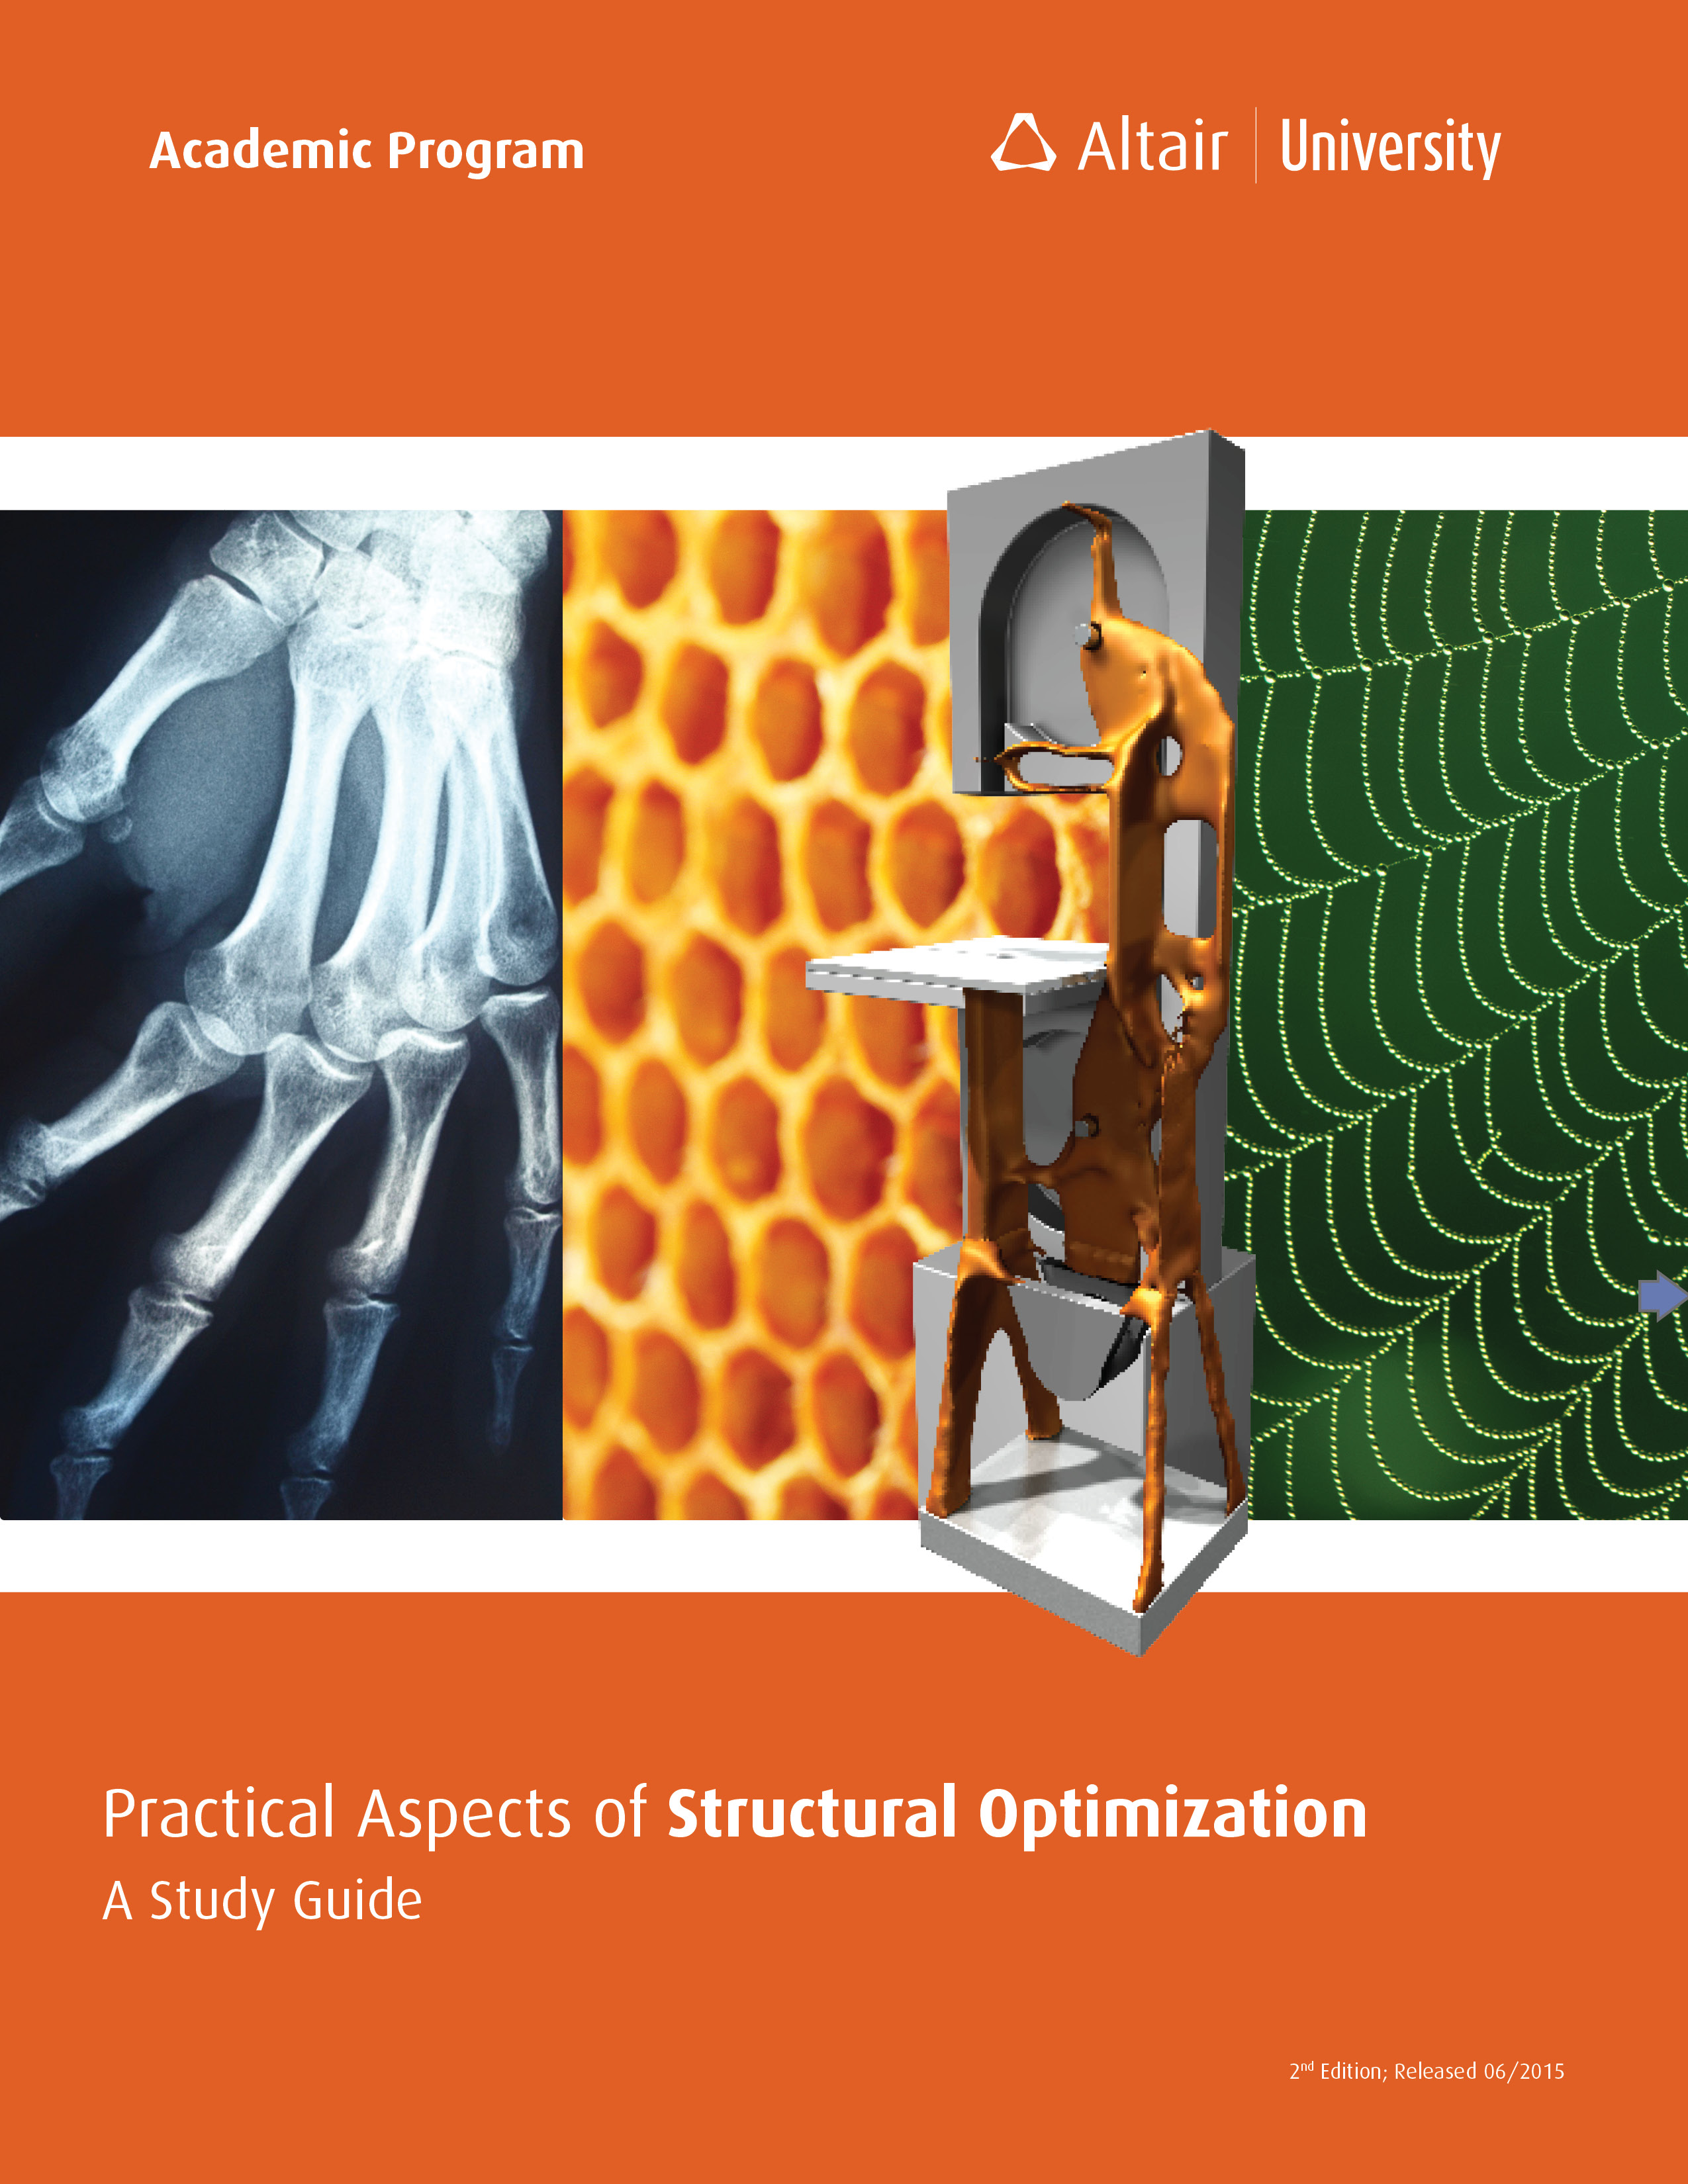 structural_optimization_cover_012714_review – Copy